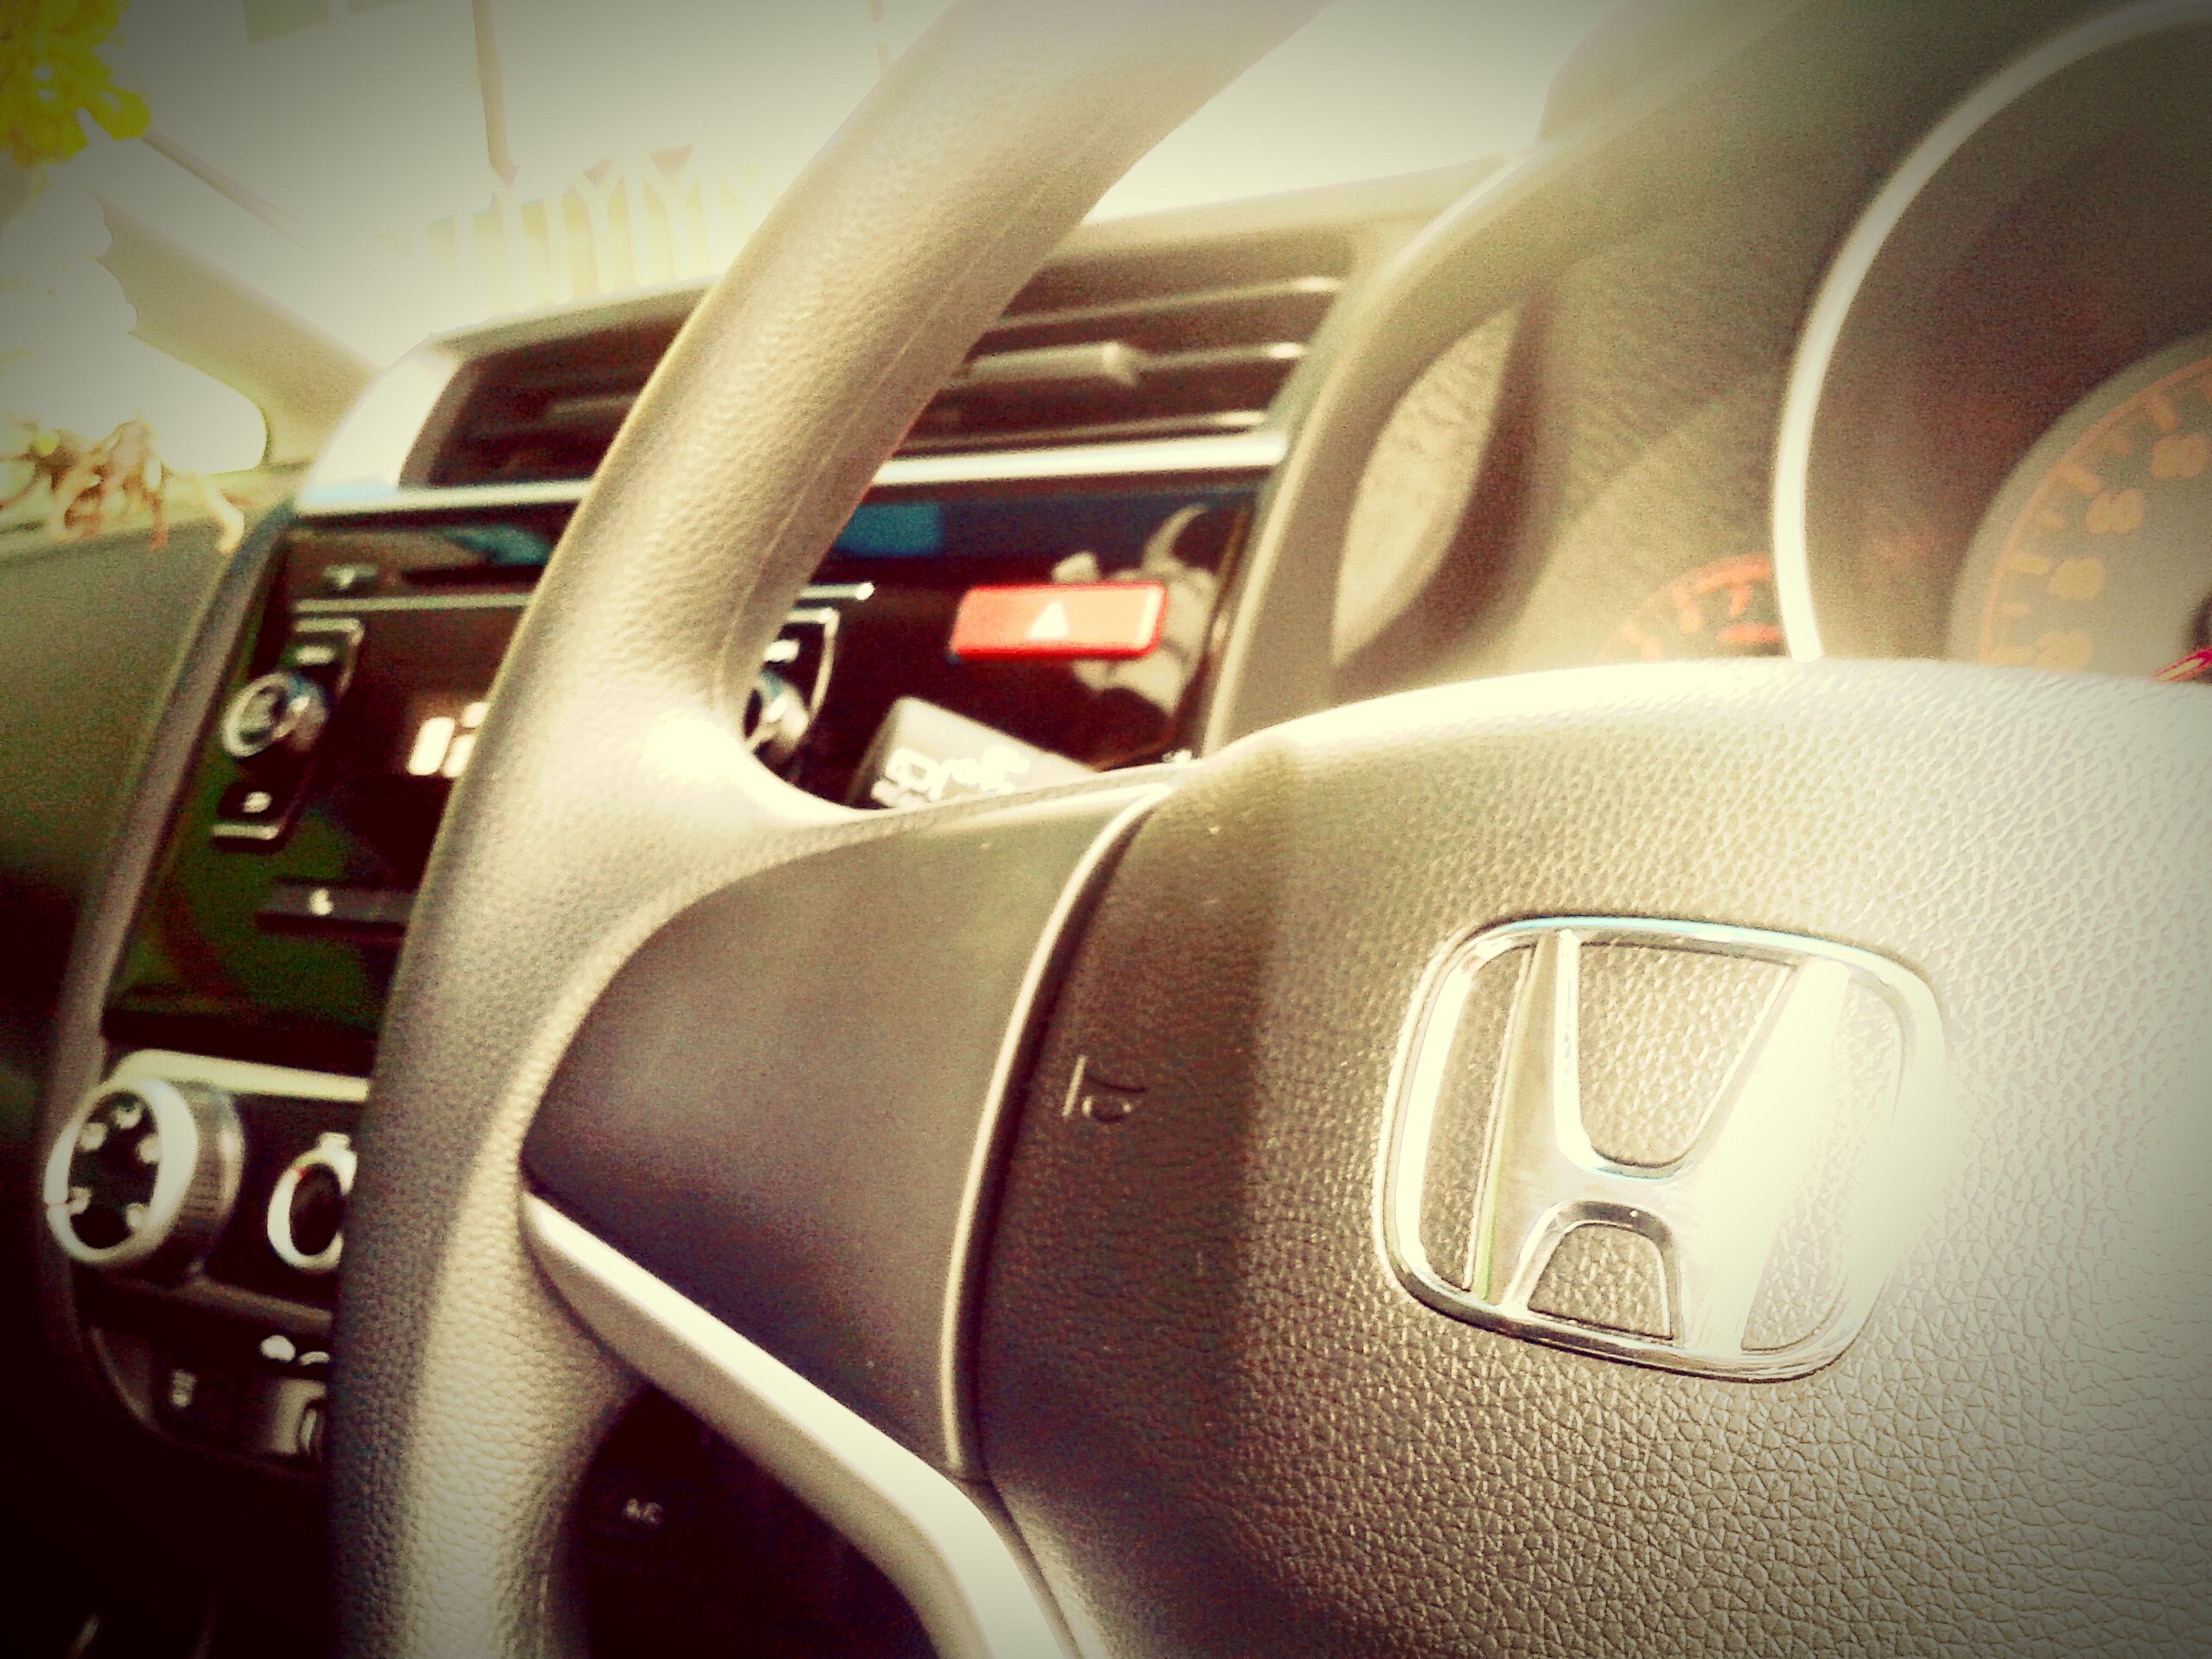 transportation, mode of transport, land vehicle, car, vehicle interior, travel, car interior, part of, vehicle part, vehicle seat, steering wheel, public transportation, close-up, journey, train - vehicle, cropped, technology, windshield, day, old-fashioned